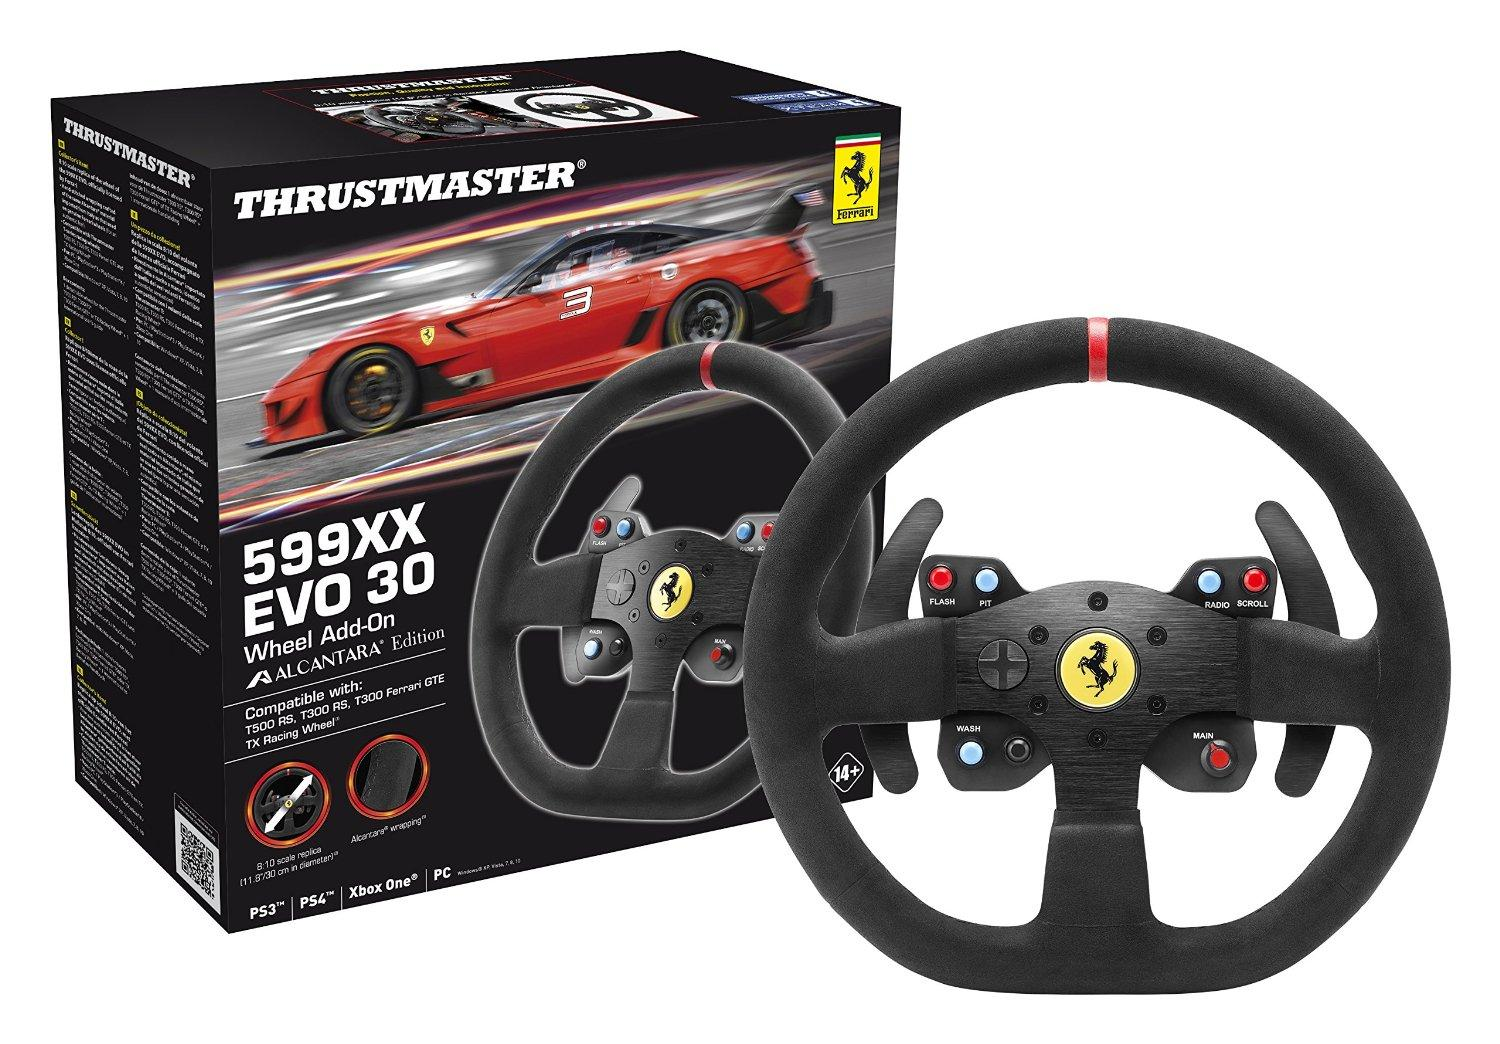 Волан THRUSTMASTER, 599XX EVO 30 Add-On, серия  Алкантара